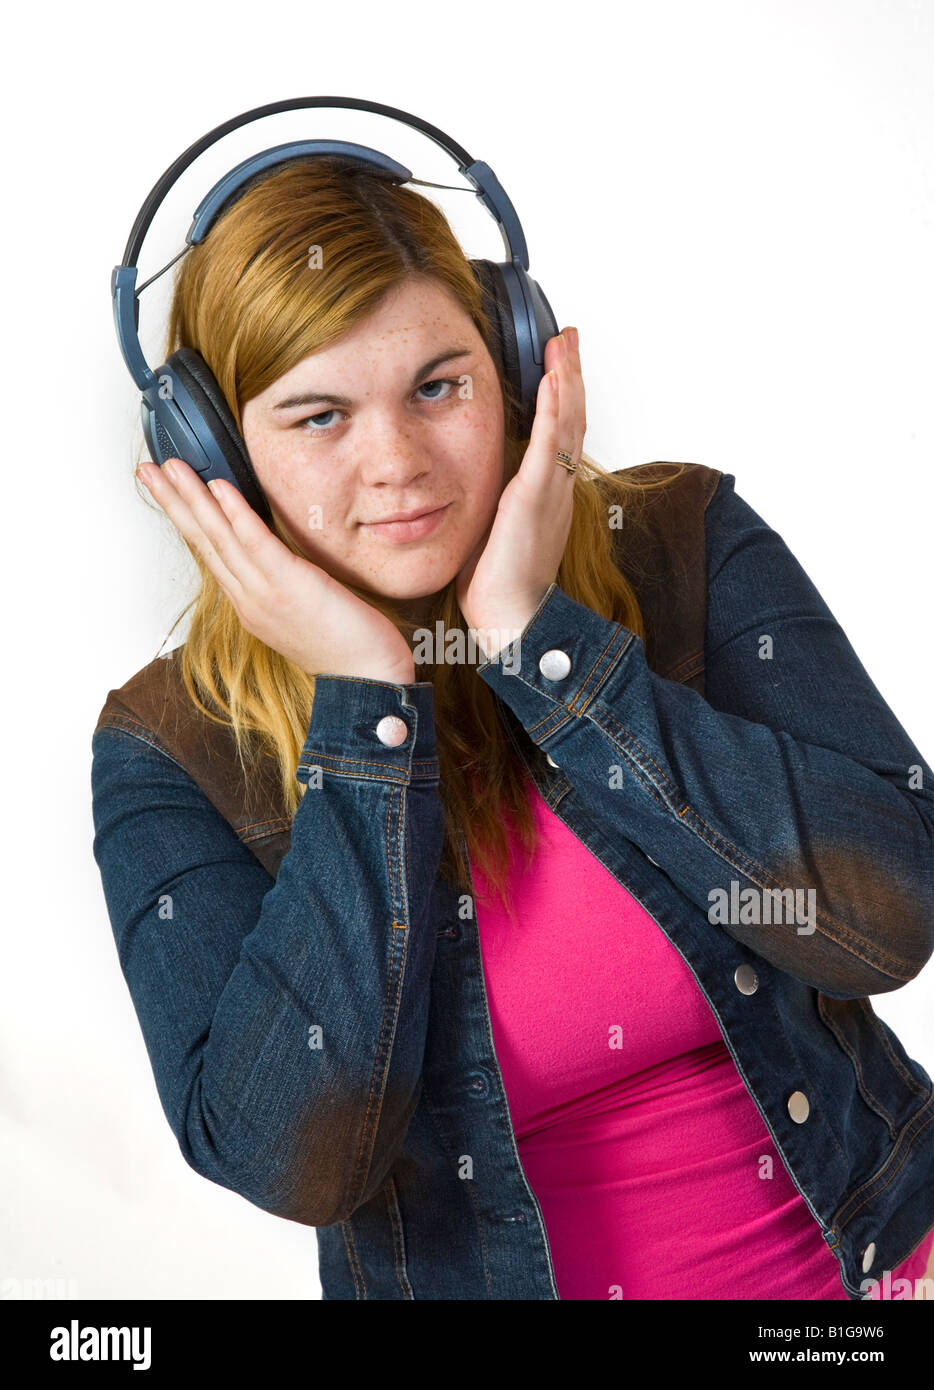 Young woman listens to music on headphones. - Stock Image